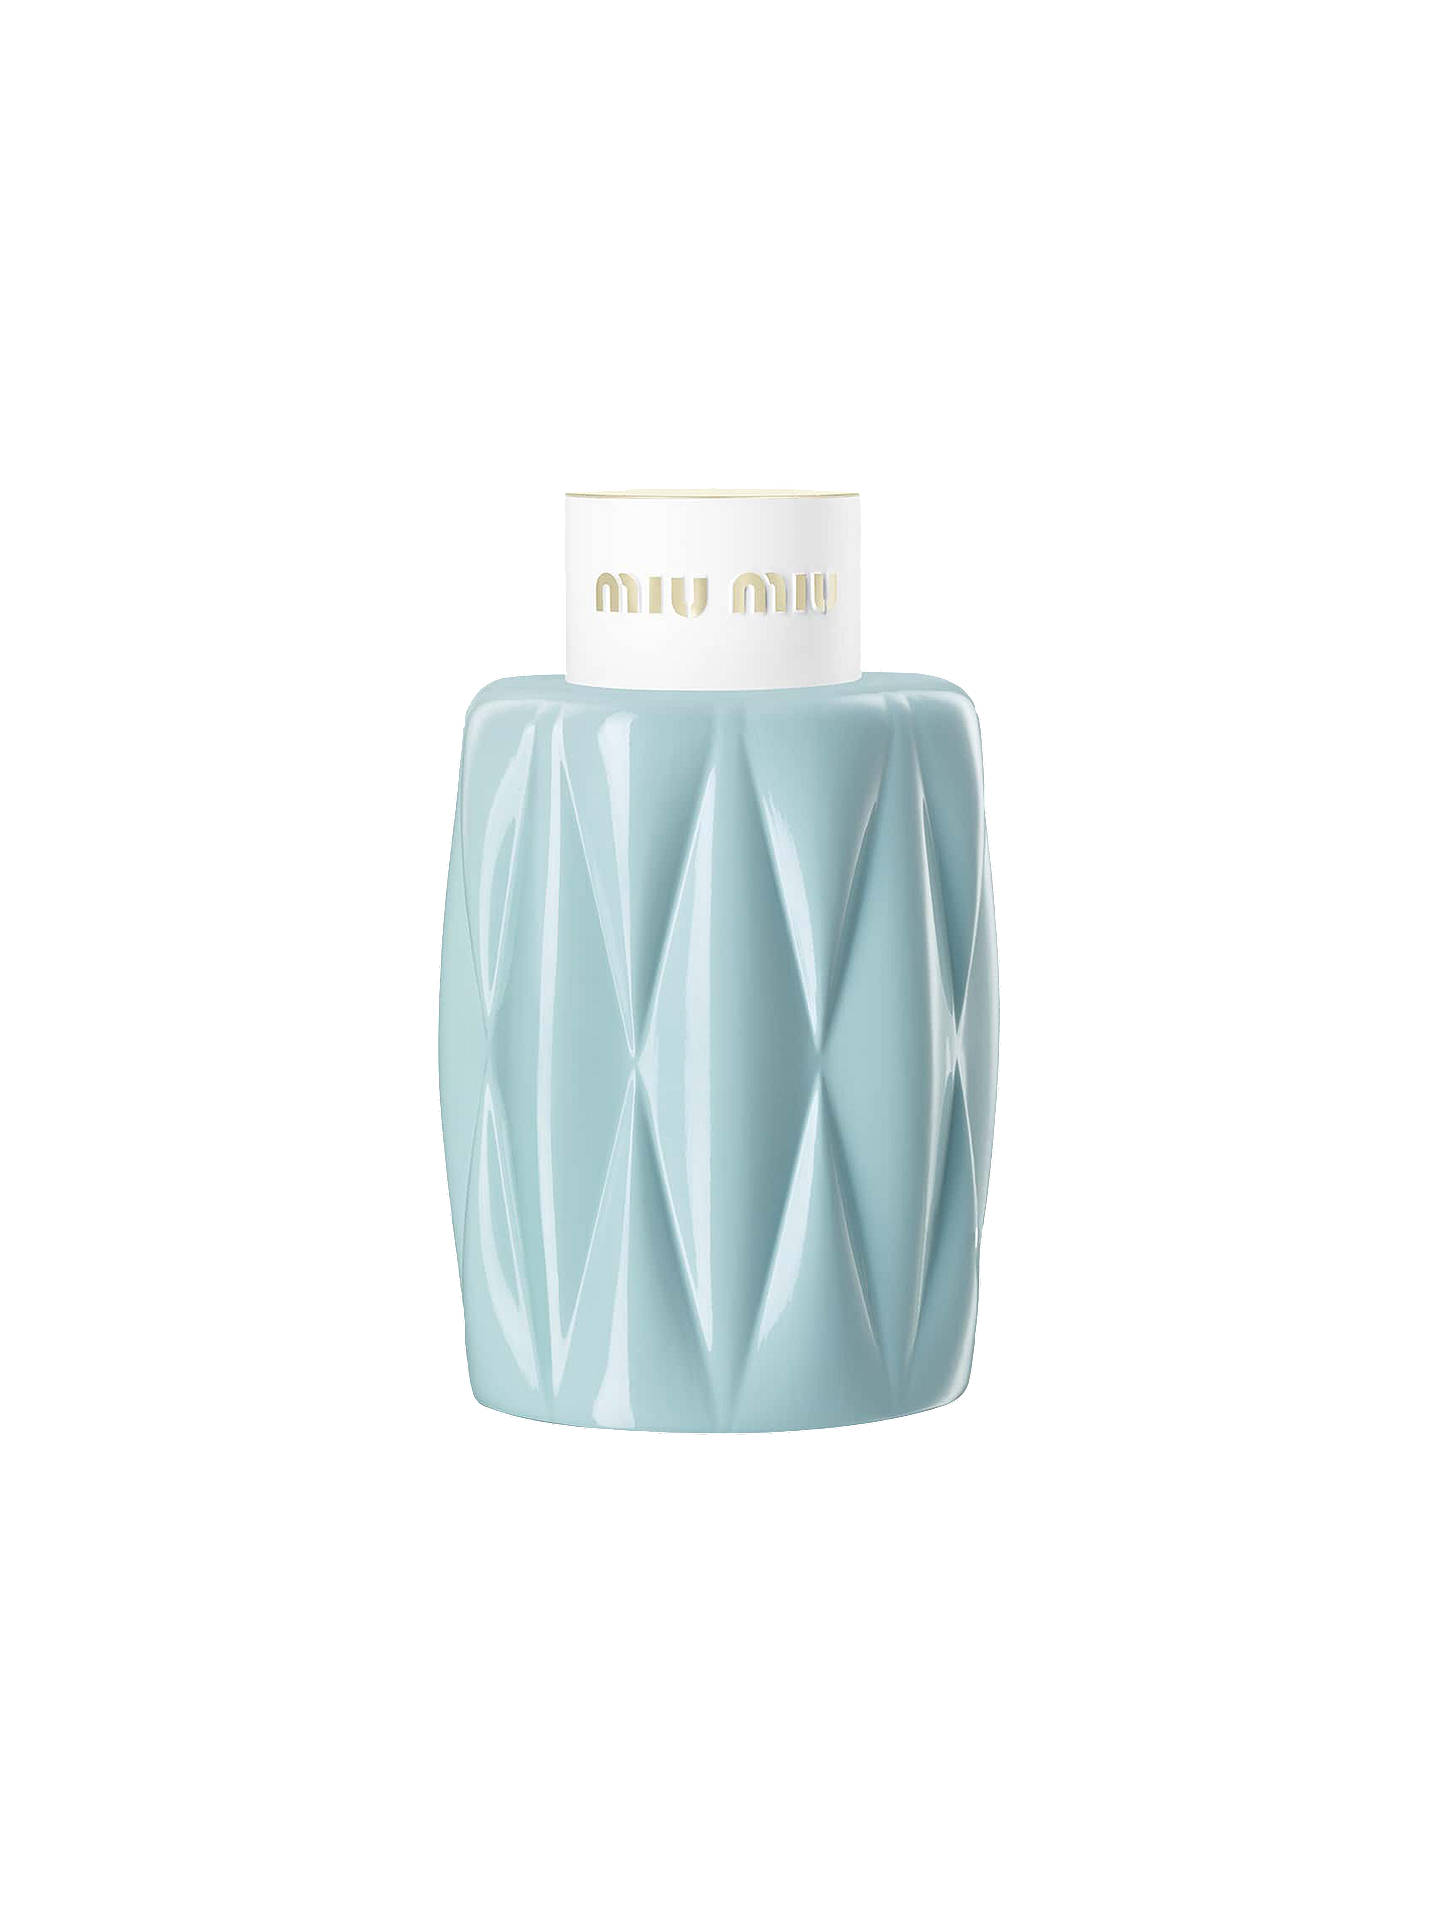 BuyMiu Miu Shower Gel, 200ml Online at johnlewis.com